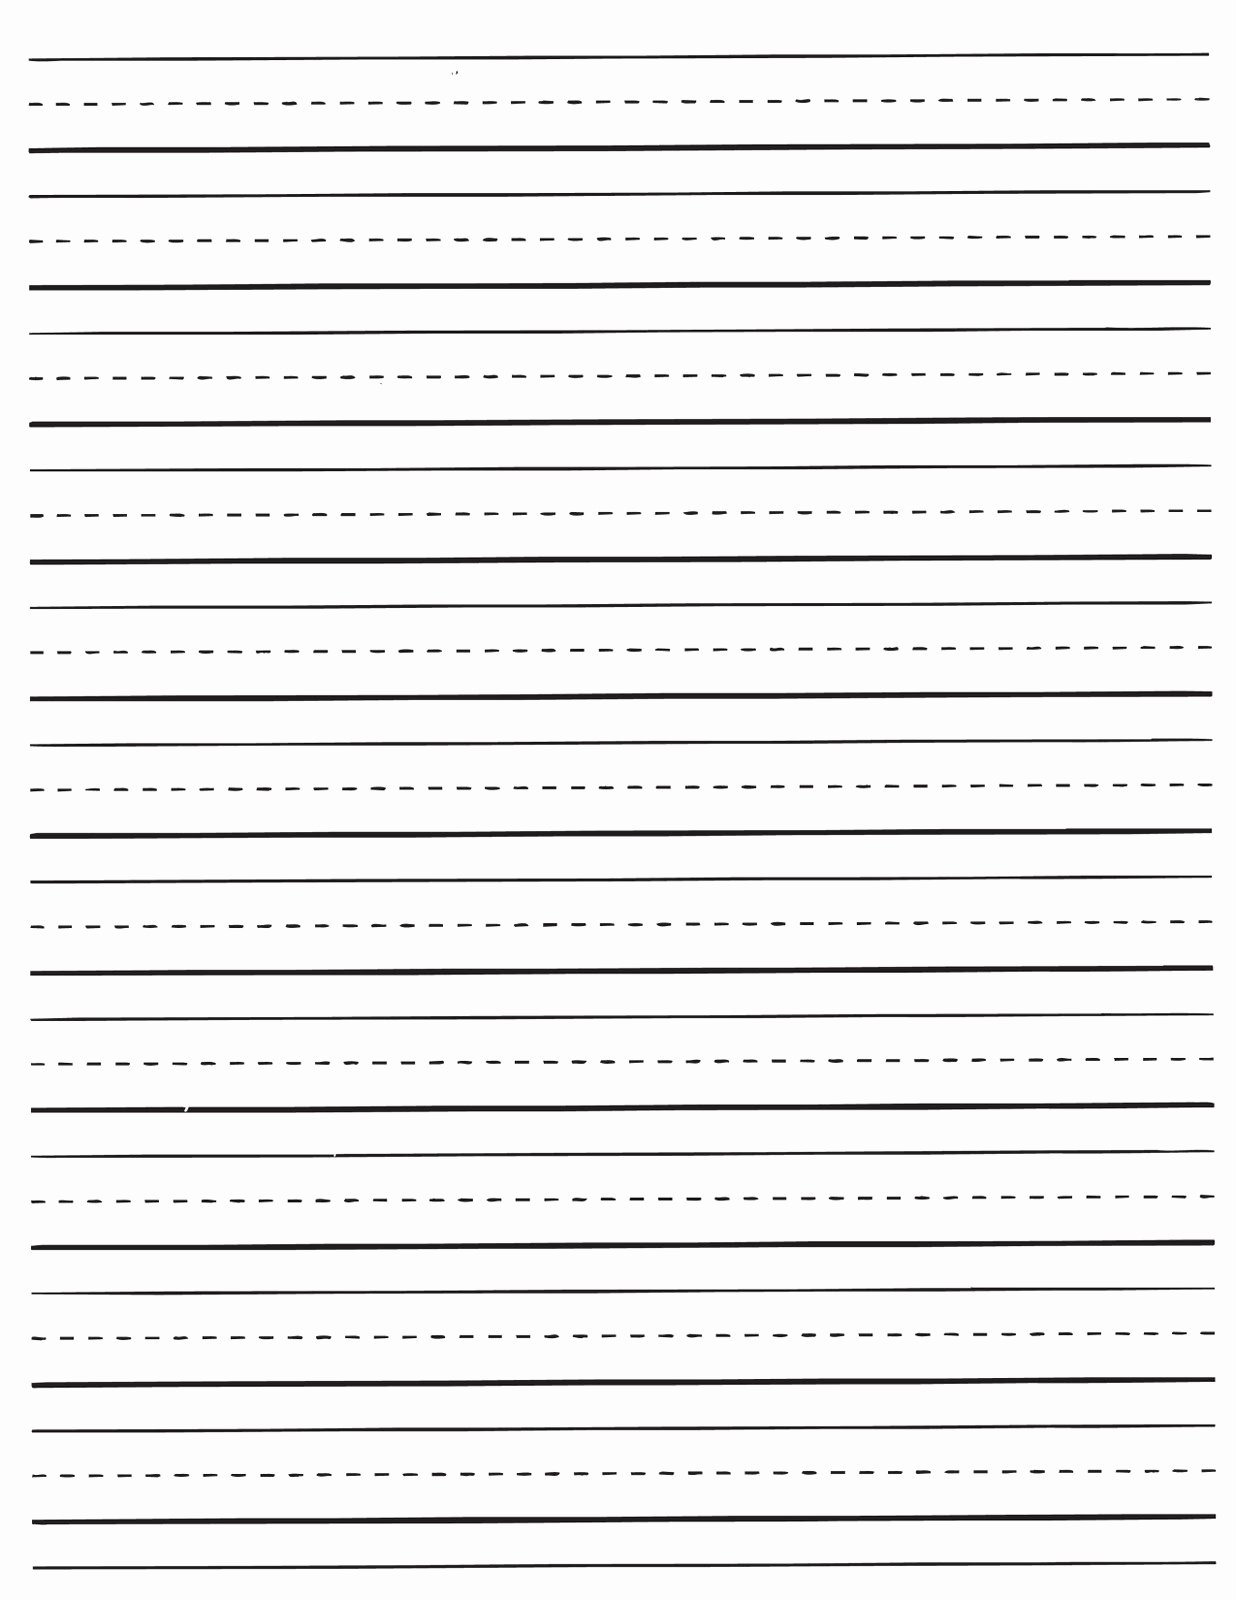 Letter Writing Paper Template Best Of Free Printable Lined Handwriting Paper Printable Pages